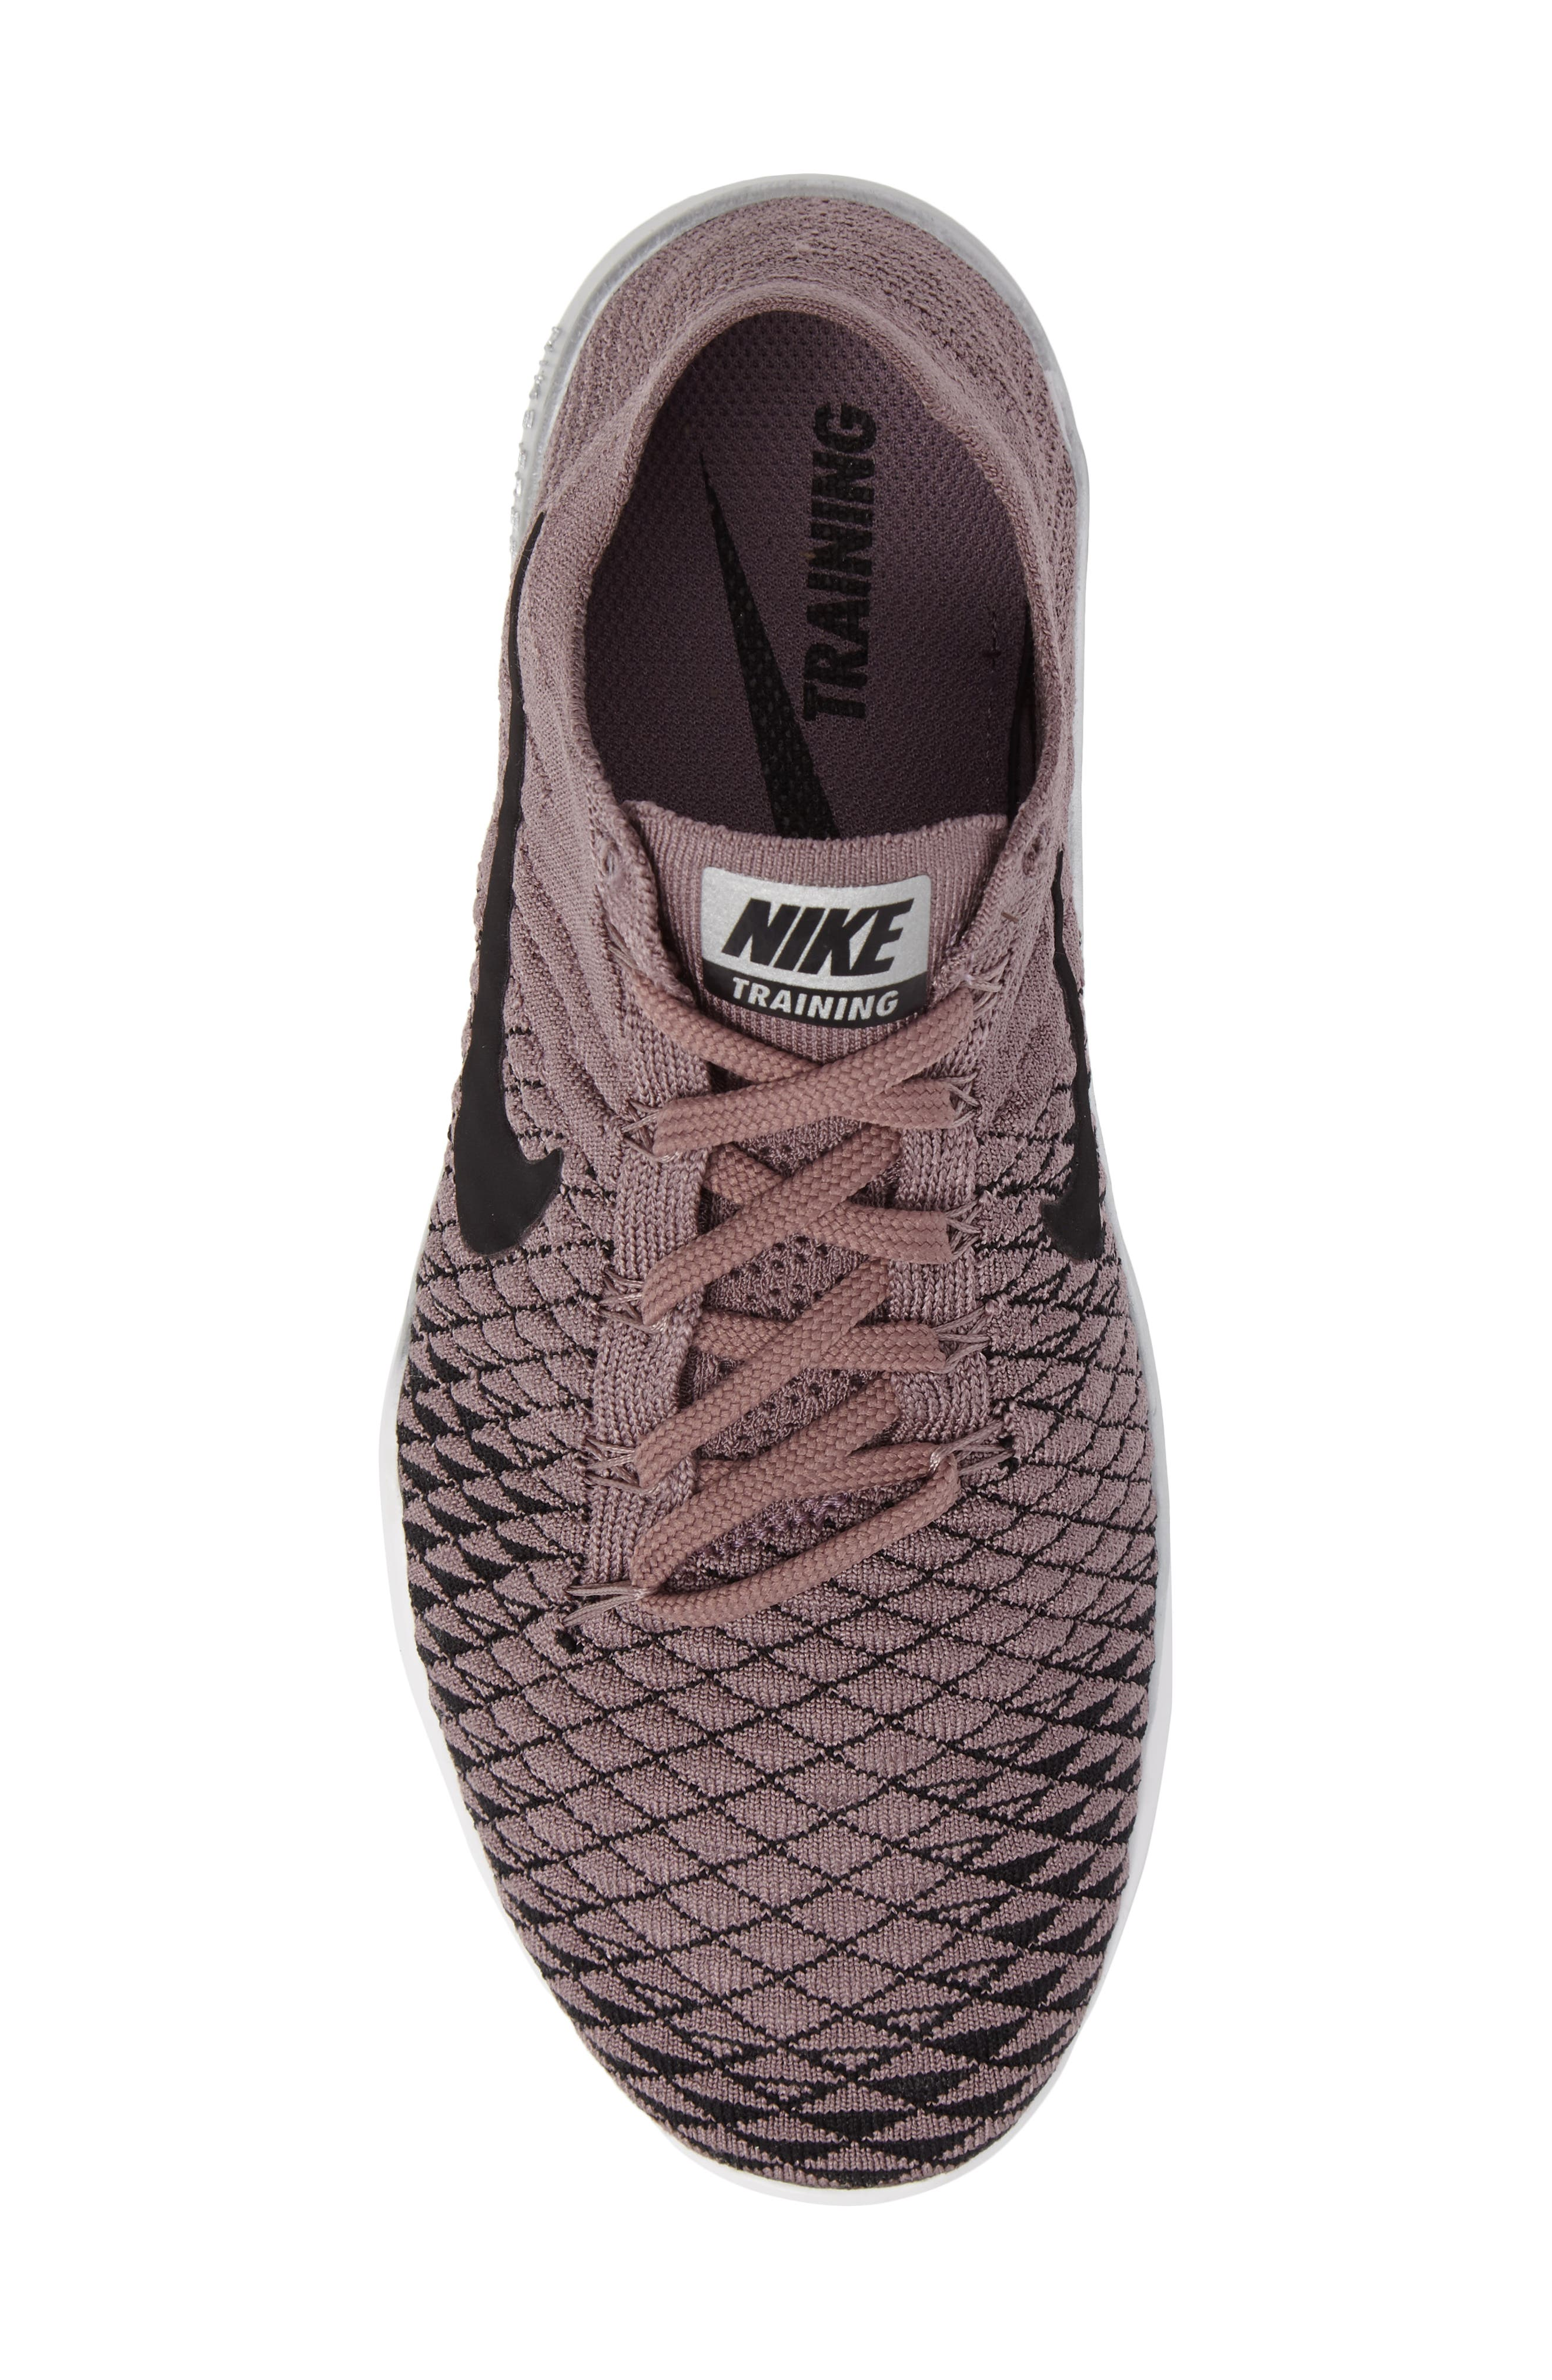 Free Focus Flyknit 2 Bionic Training Shoe,                             Alternate thumbnail 6, color,                             Taupe Grey/ Black/ Chrome